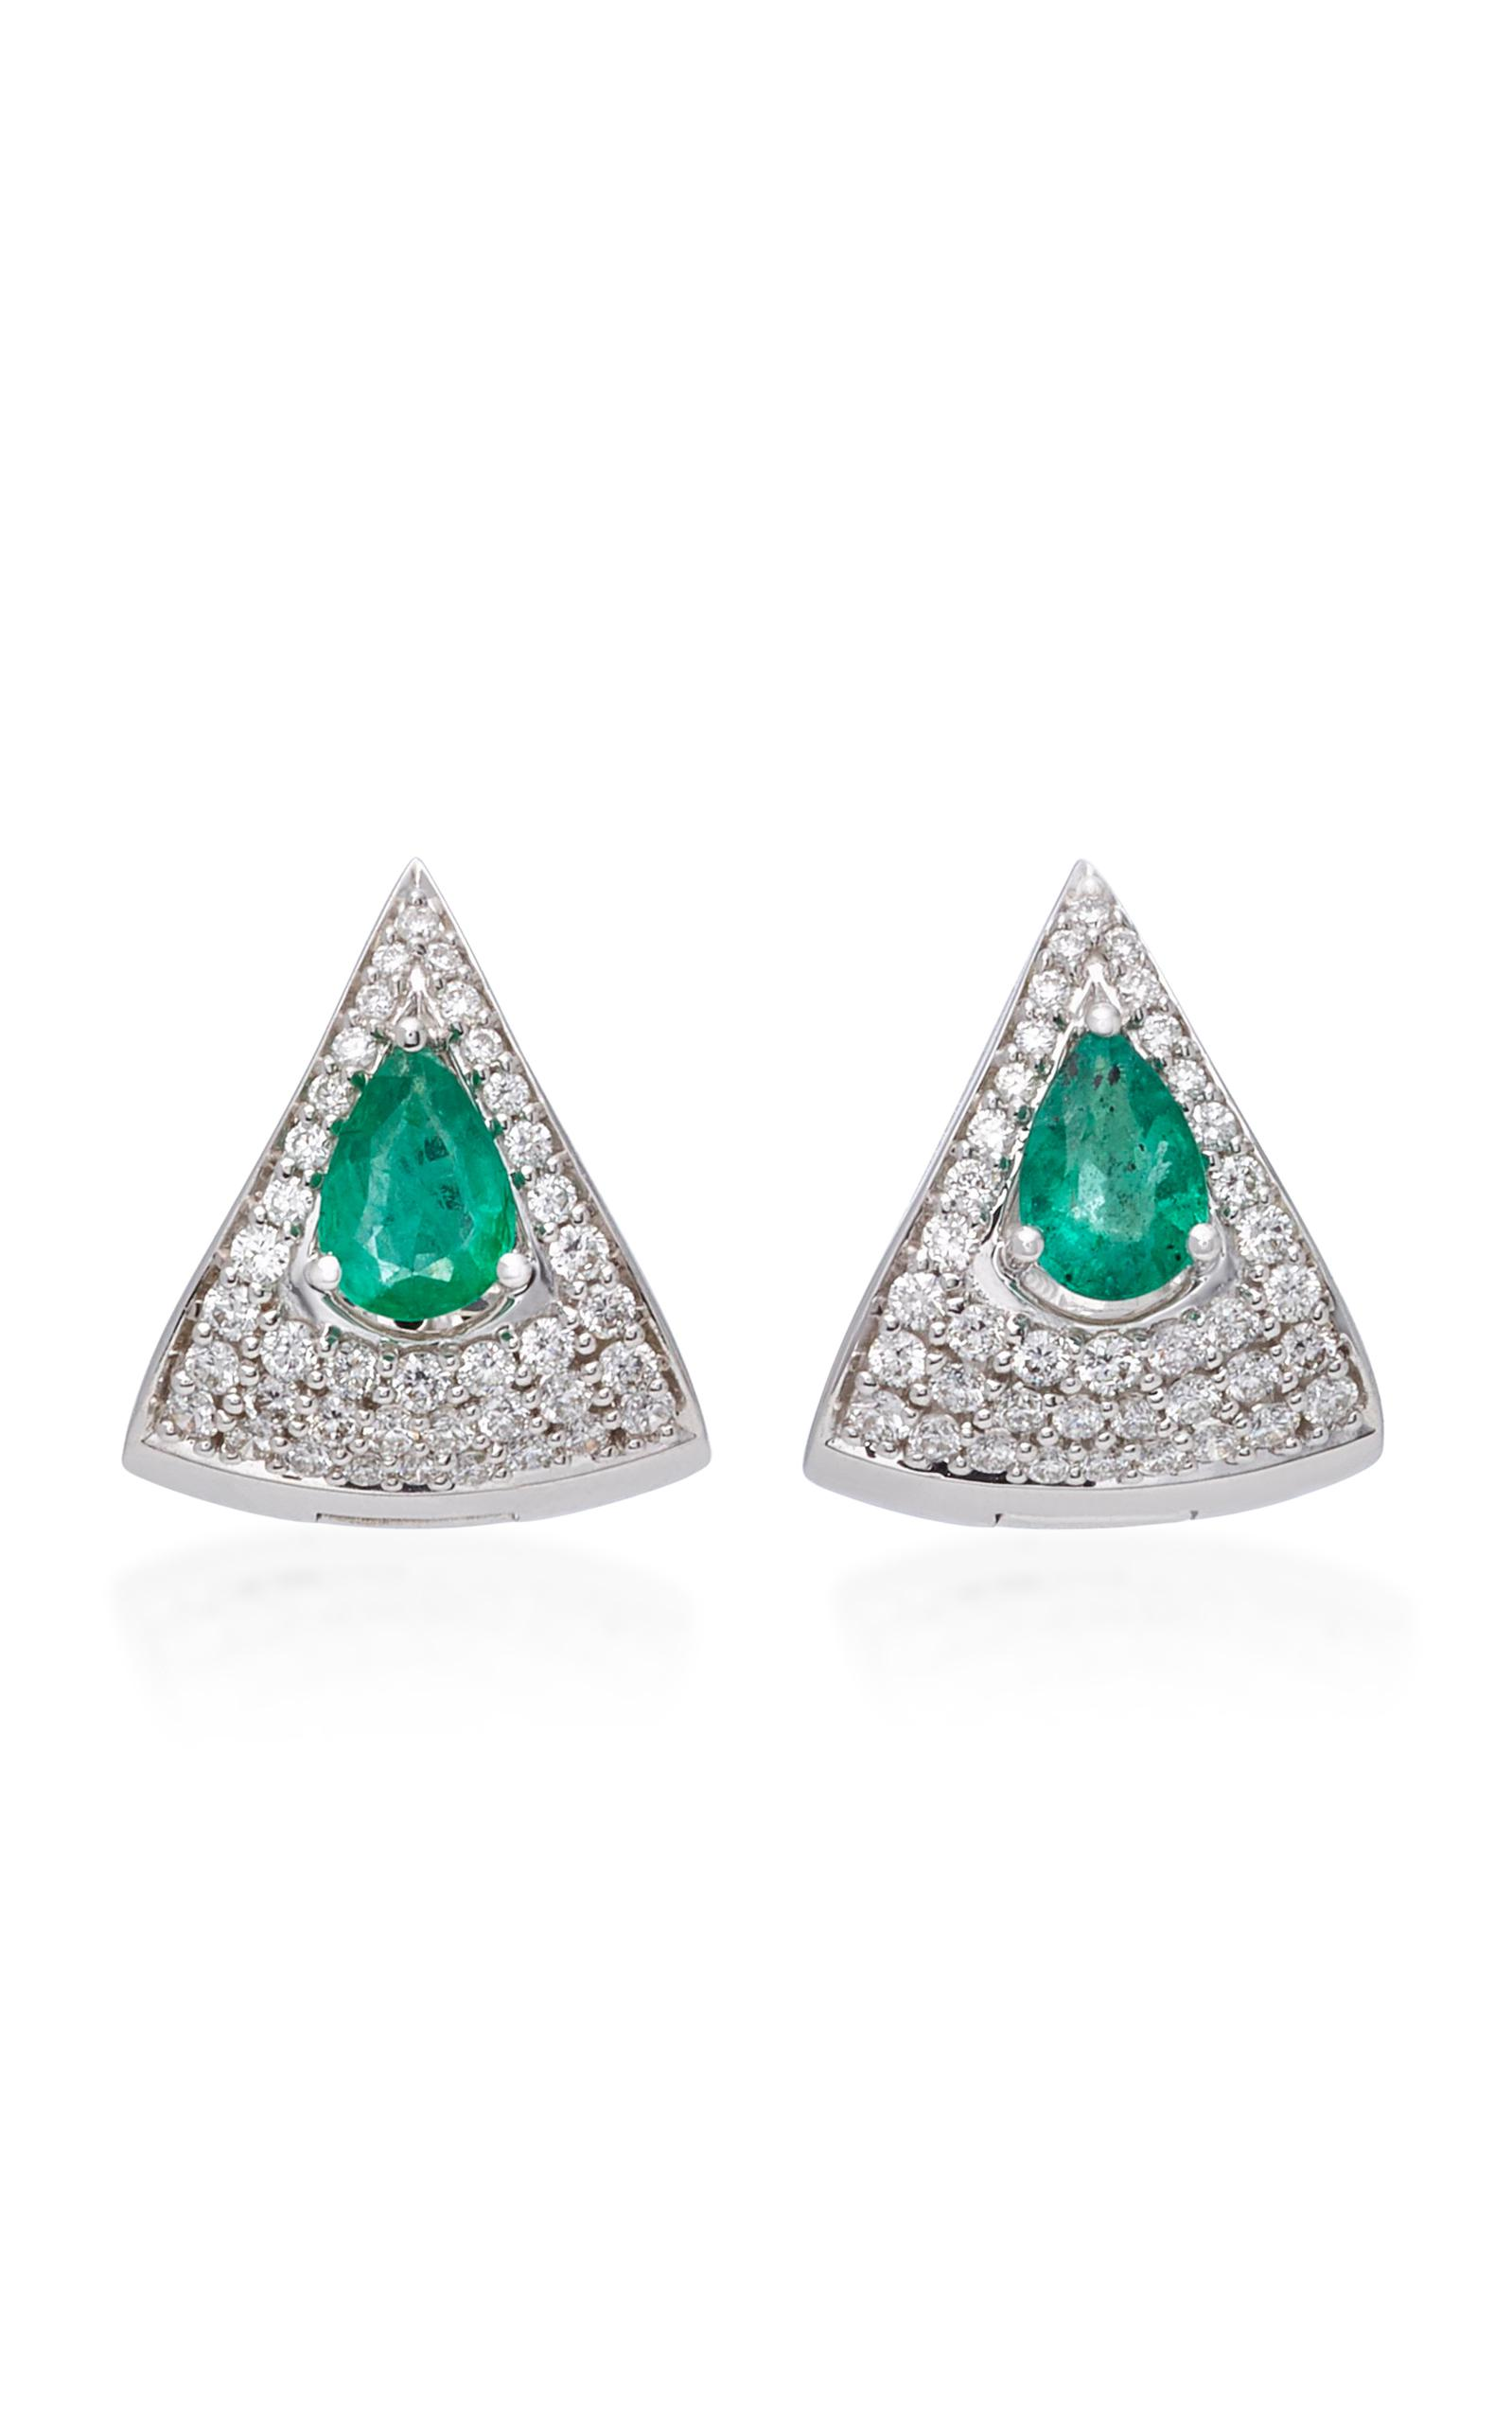 stud earring jewellery earrings silver zoom sterling emerald green birthstone simply may